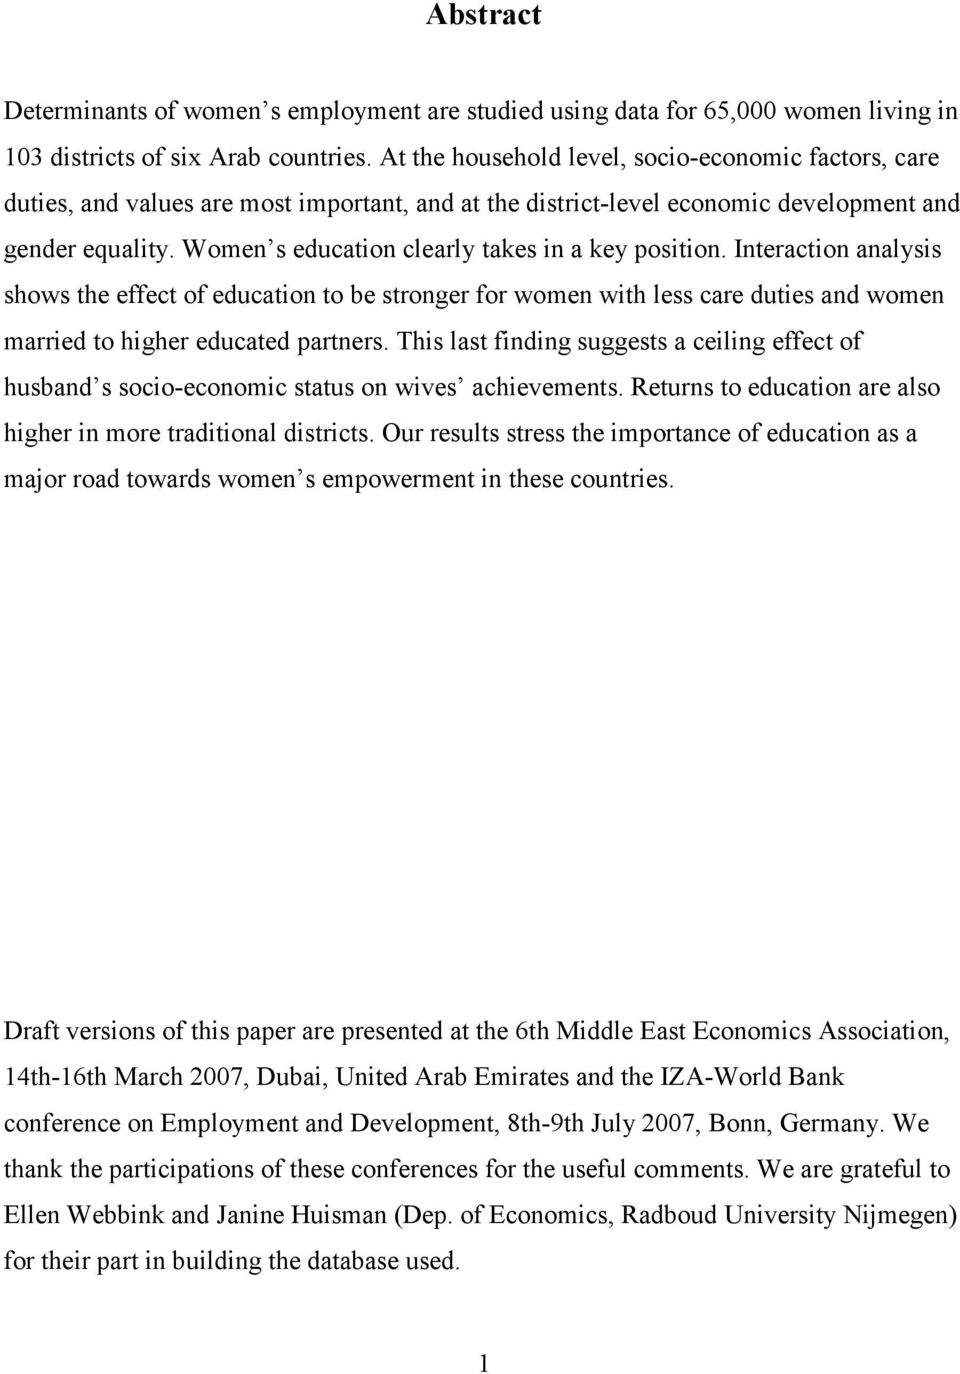 Women s education clearly takes in a key position. Interaction analysis shows the effect of education to be stronger for women with less care duties and women married to higher educated partners.